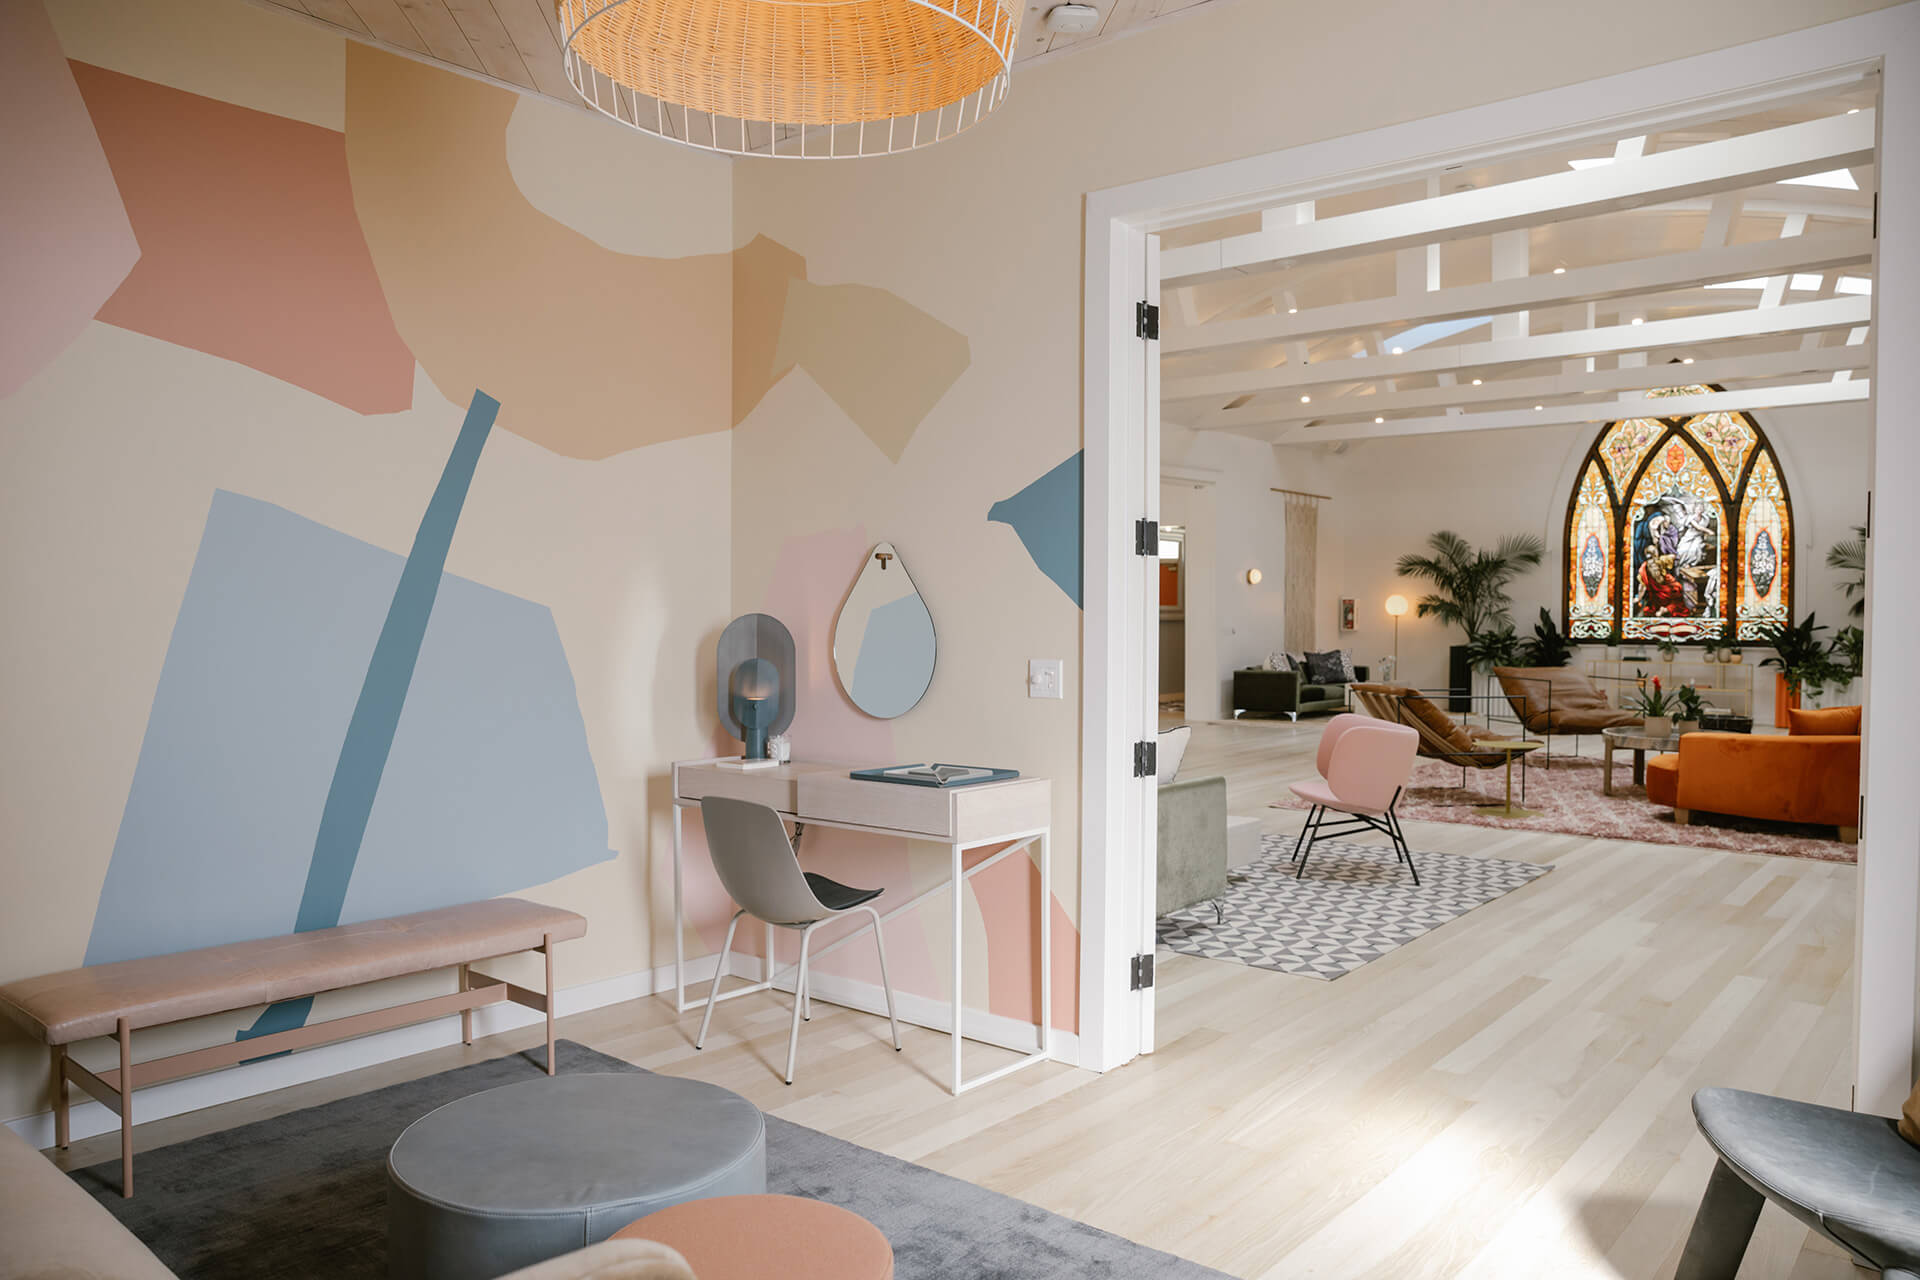 The eclectic mix of furniture and rugs at The Ruby Street | The Ruby Street in LA is a coworking space by Working Holiday Studio and Francesca De La Fuente | STIRworld